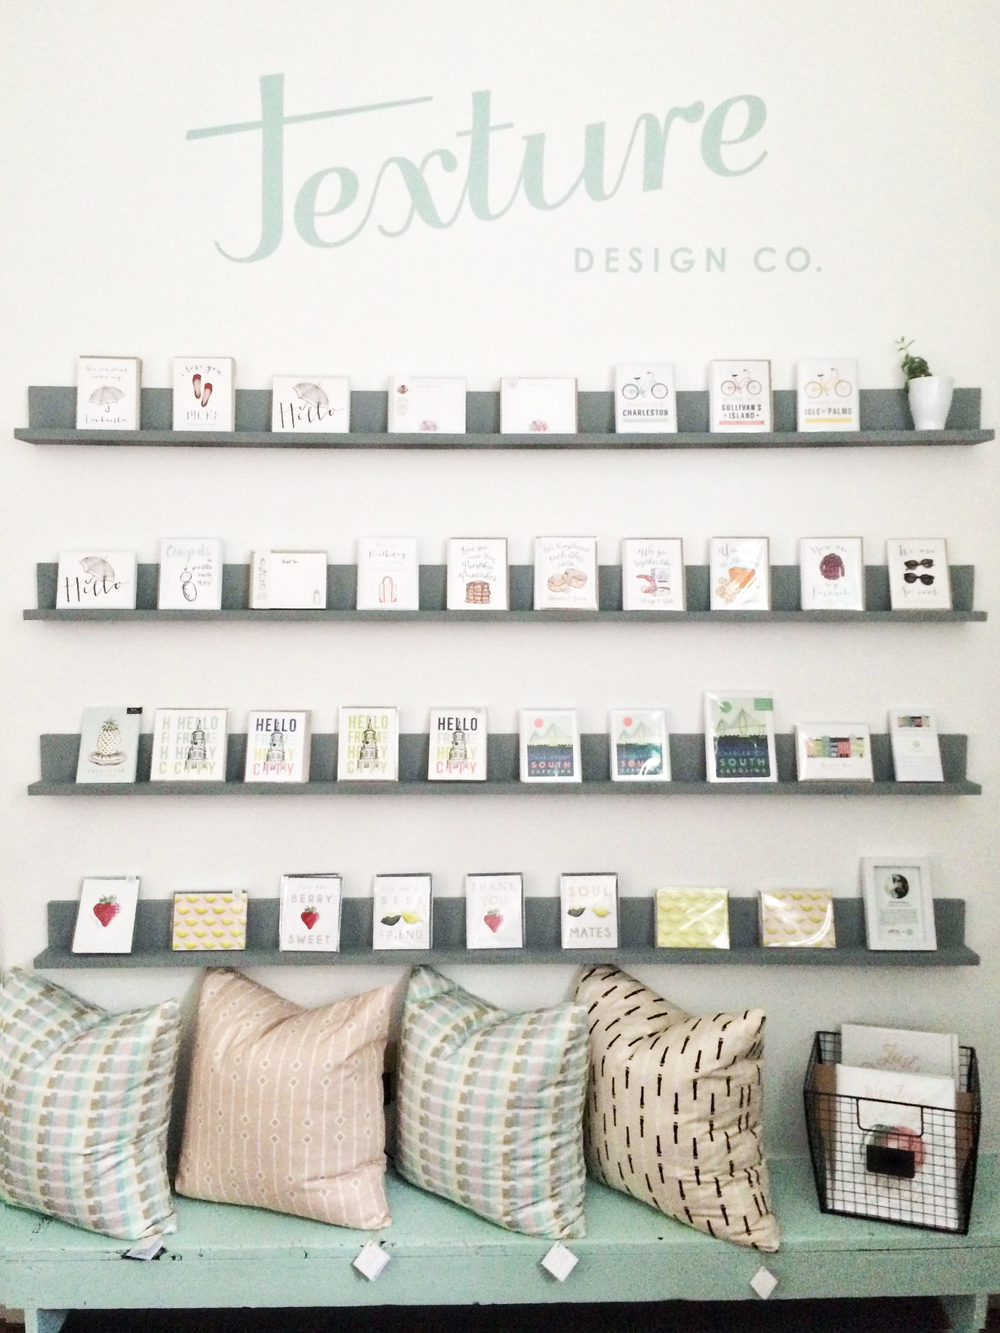 Texture Design Co Stationery Shop